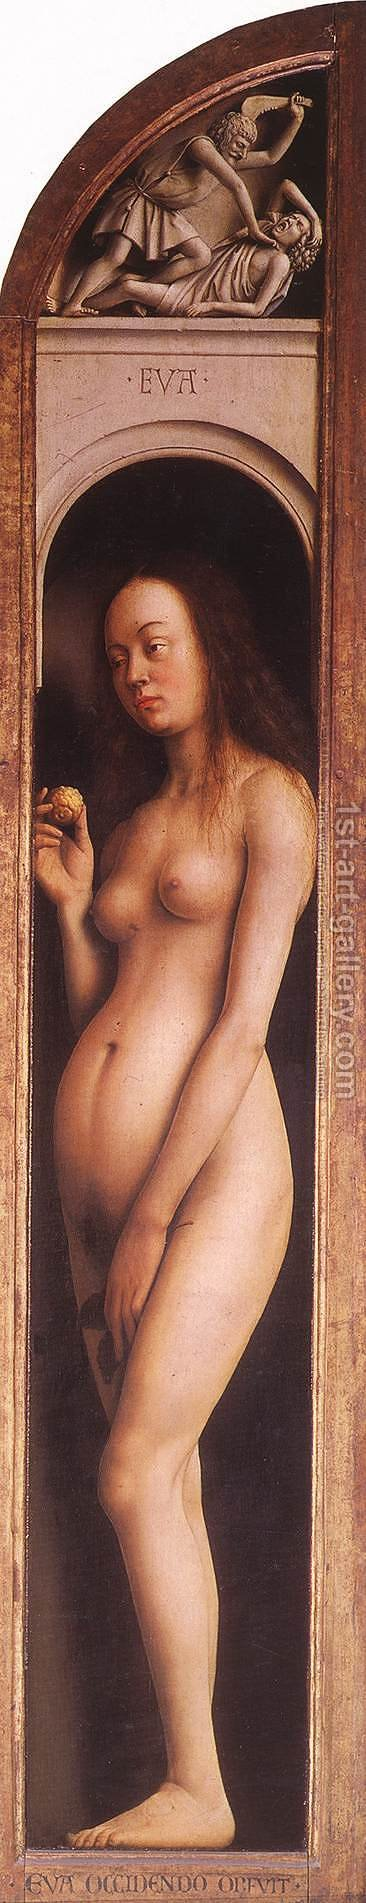 The Ghent Altarpiece Eve; The Killing of Abel by Jan Van Eyck - Reproduction Oil Painting